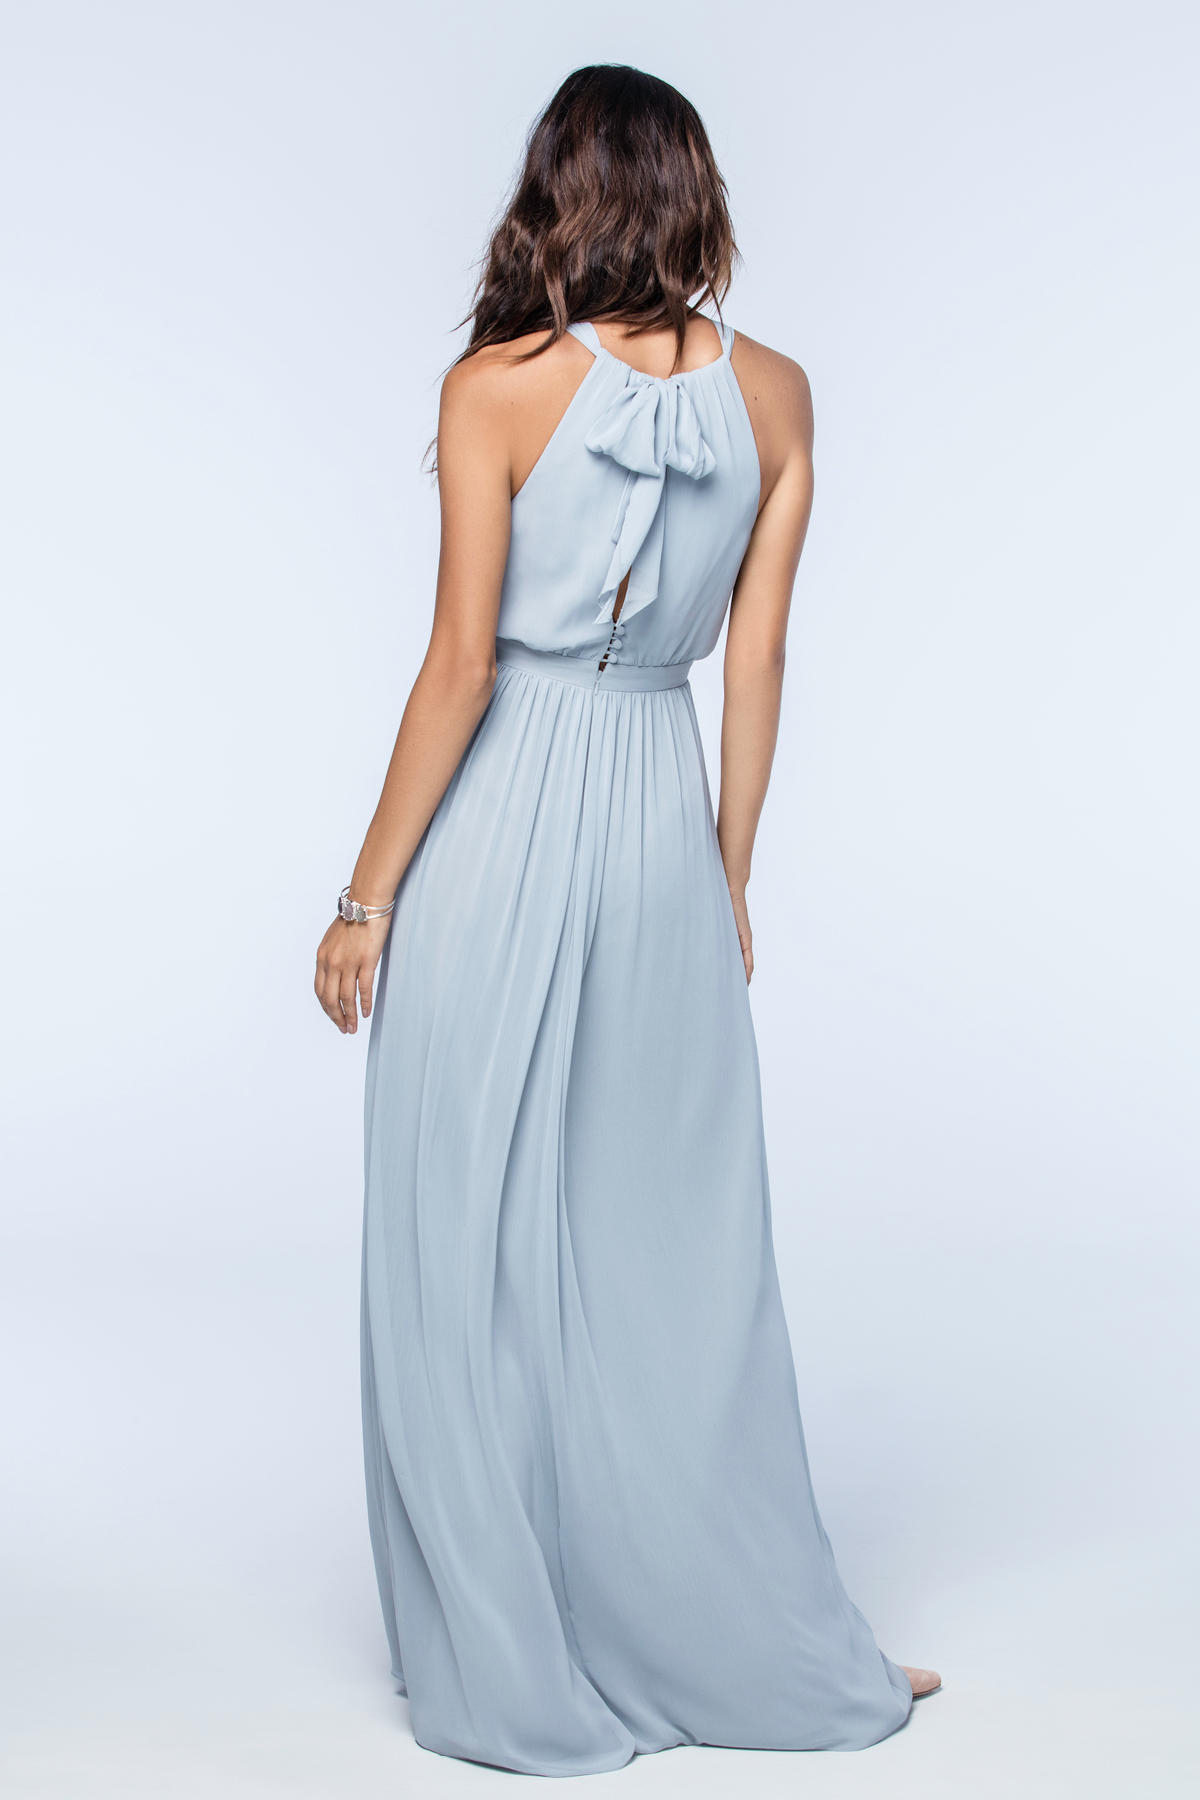 2512 Bridesmaids Dress By Watters